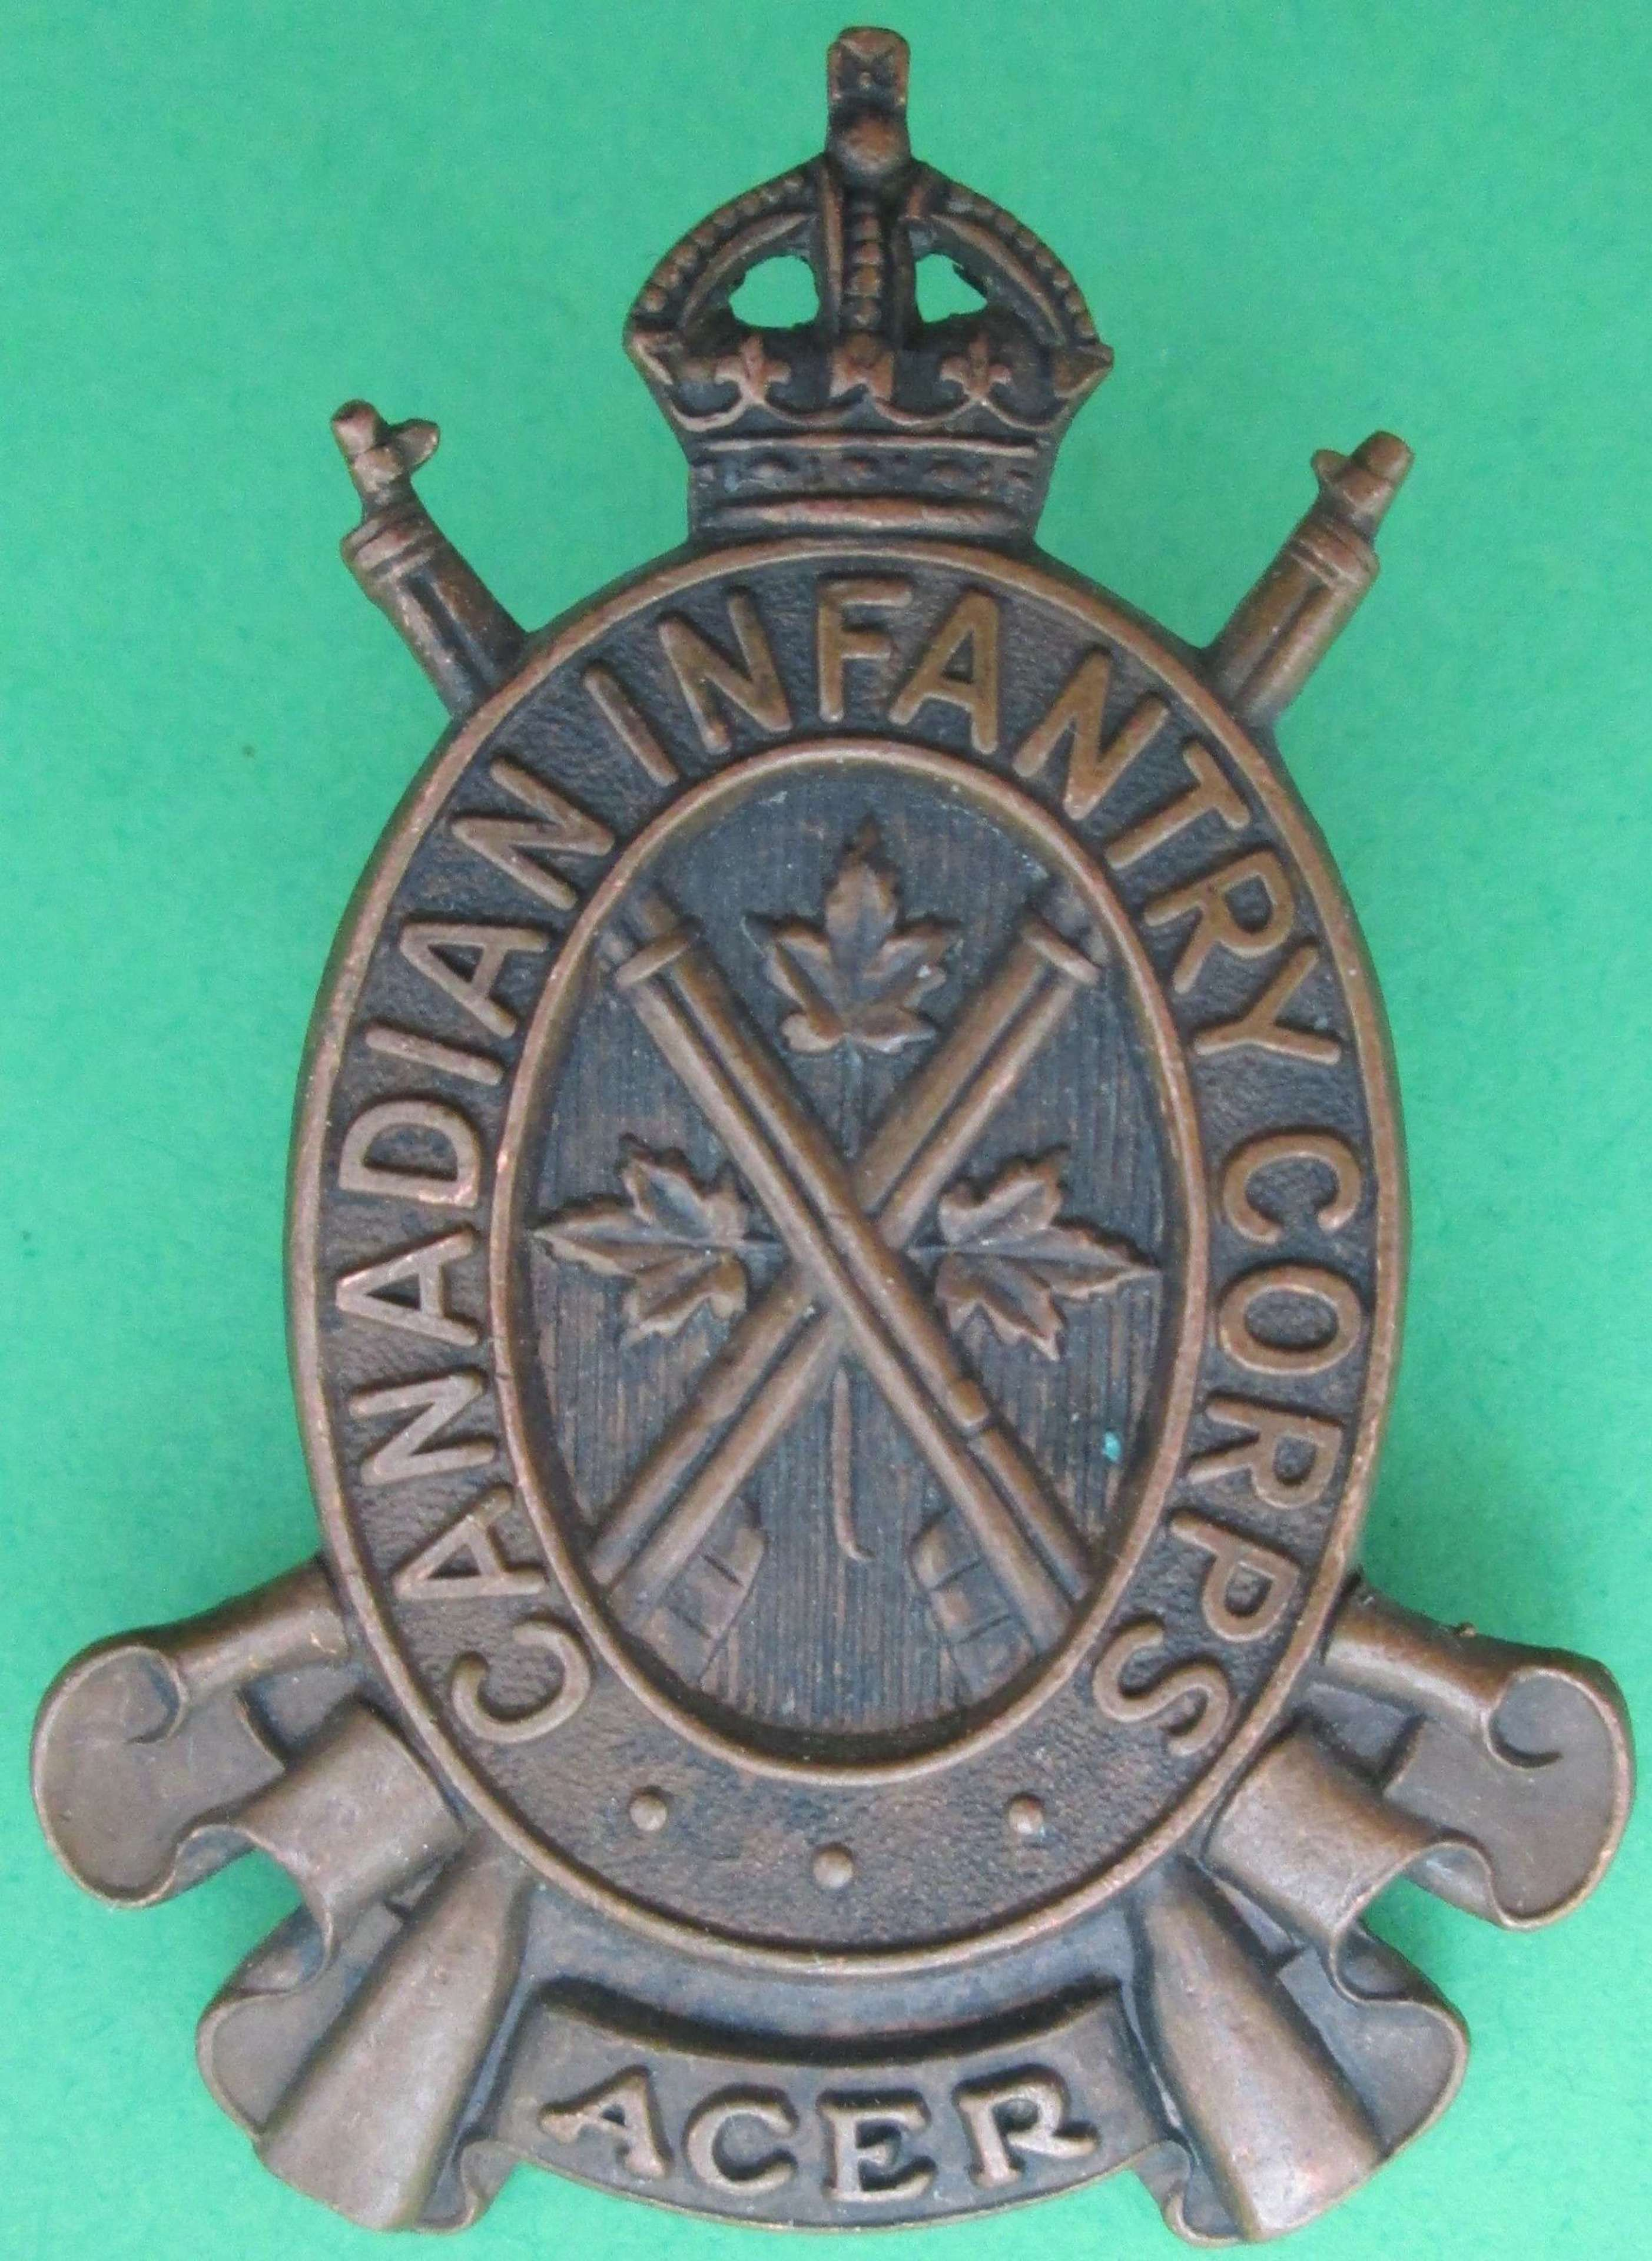 A CANADIAN INFANTRY CORPS BADGE